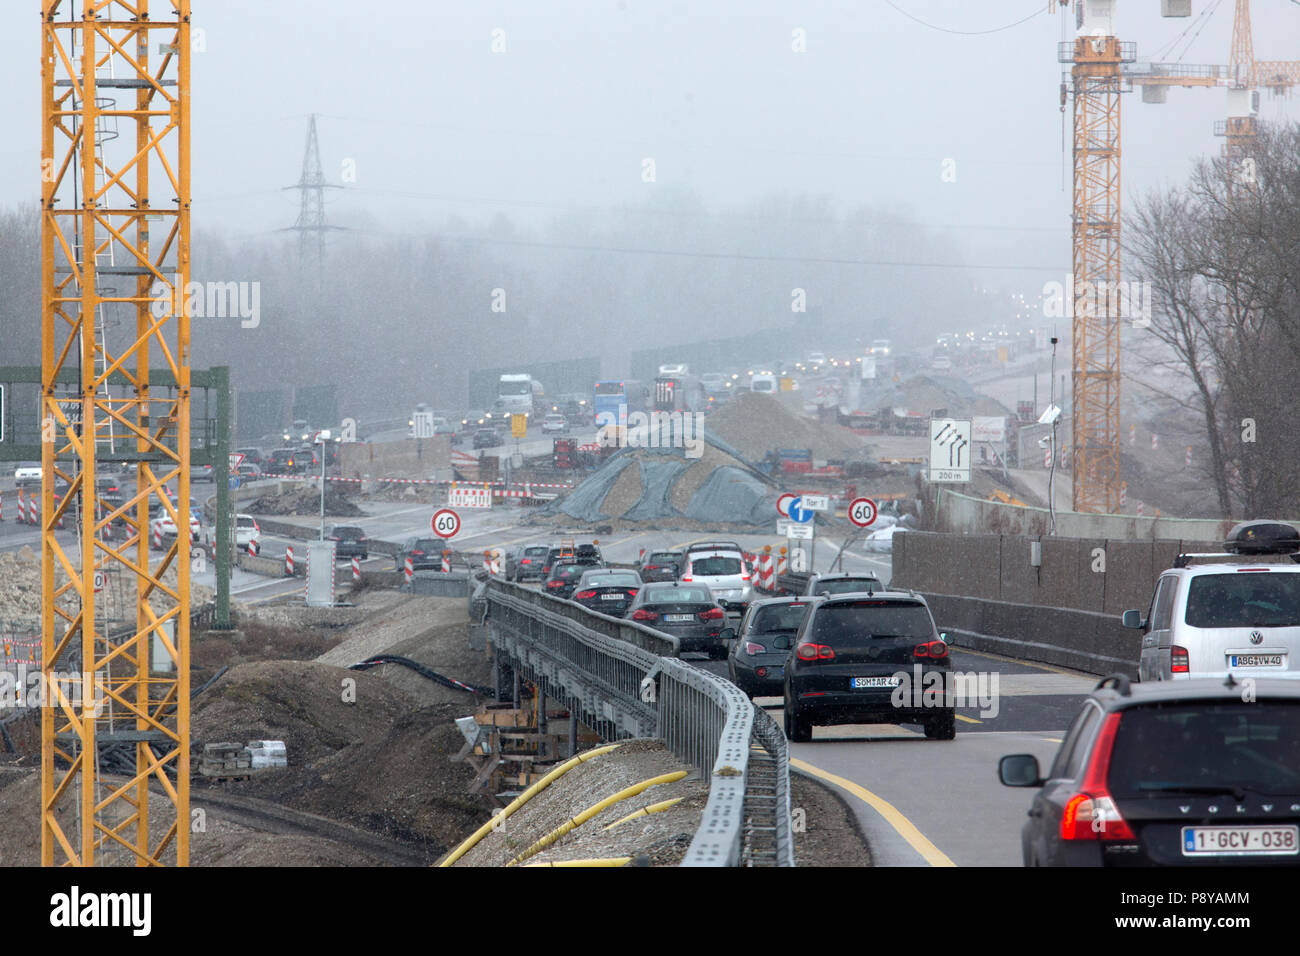 Muenchen, Germany, road construction site on the A8 motorway - Stock Image